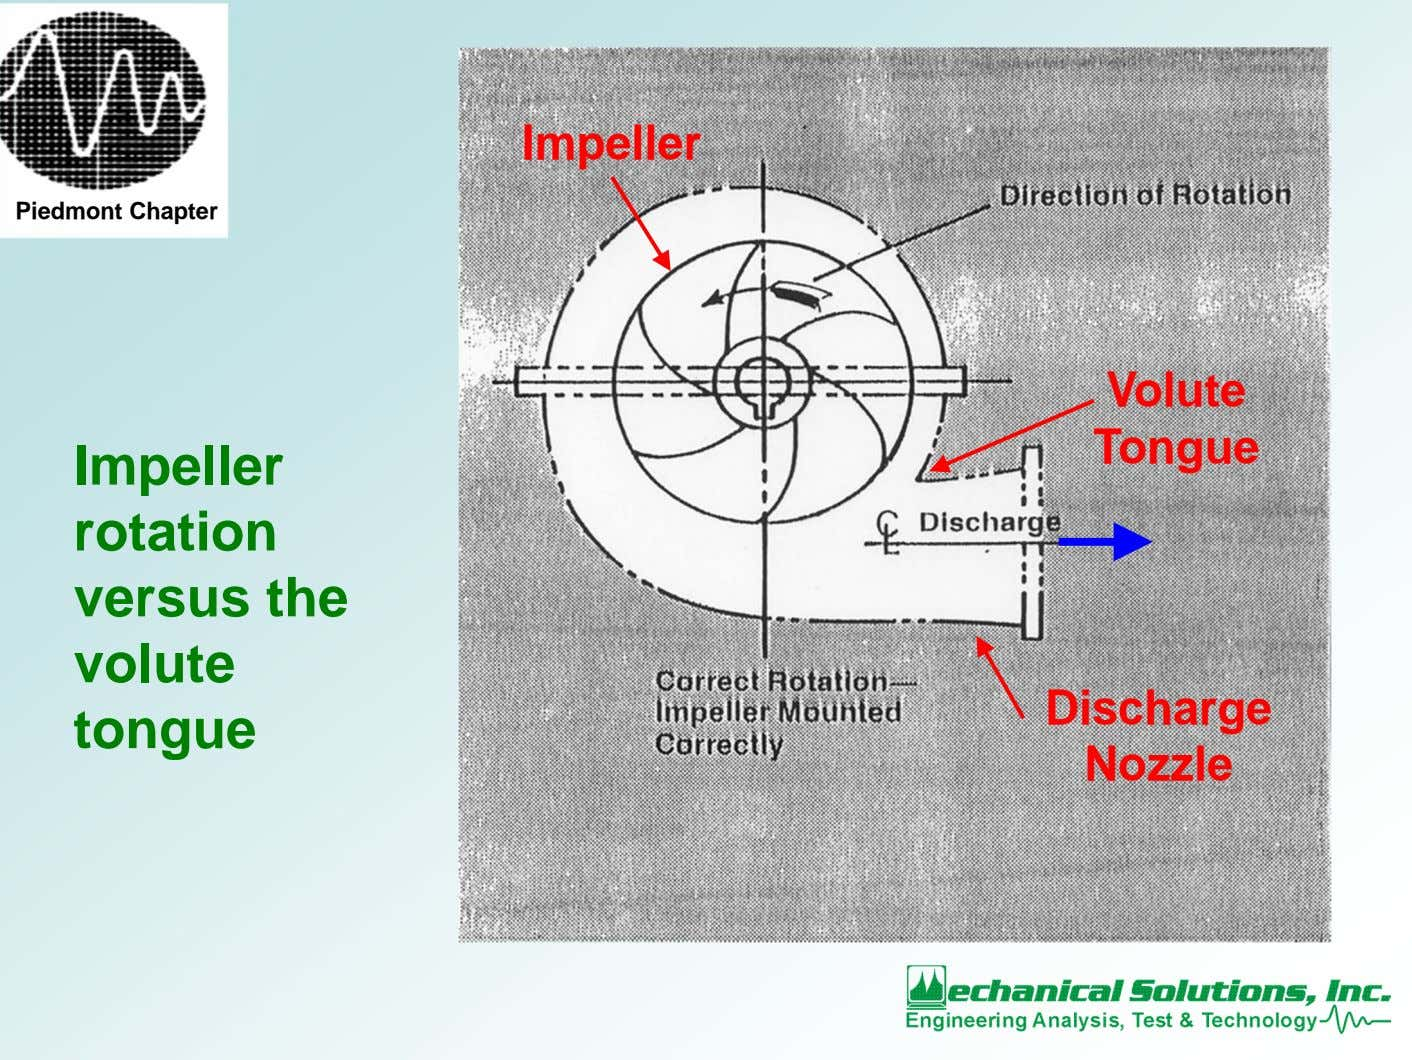 Impeller Piedmont Chapter Volute Tongue Impeller rotation versus the volute tongue Discharge Nozzle